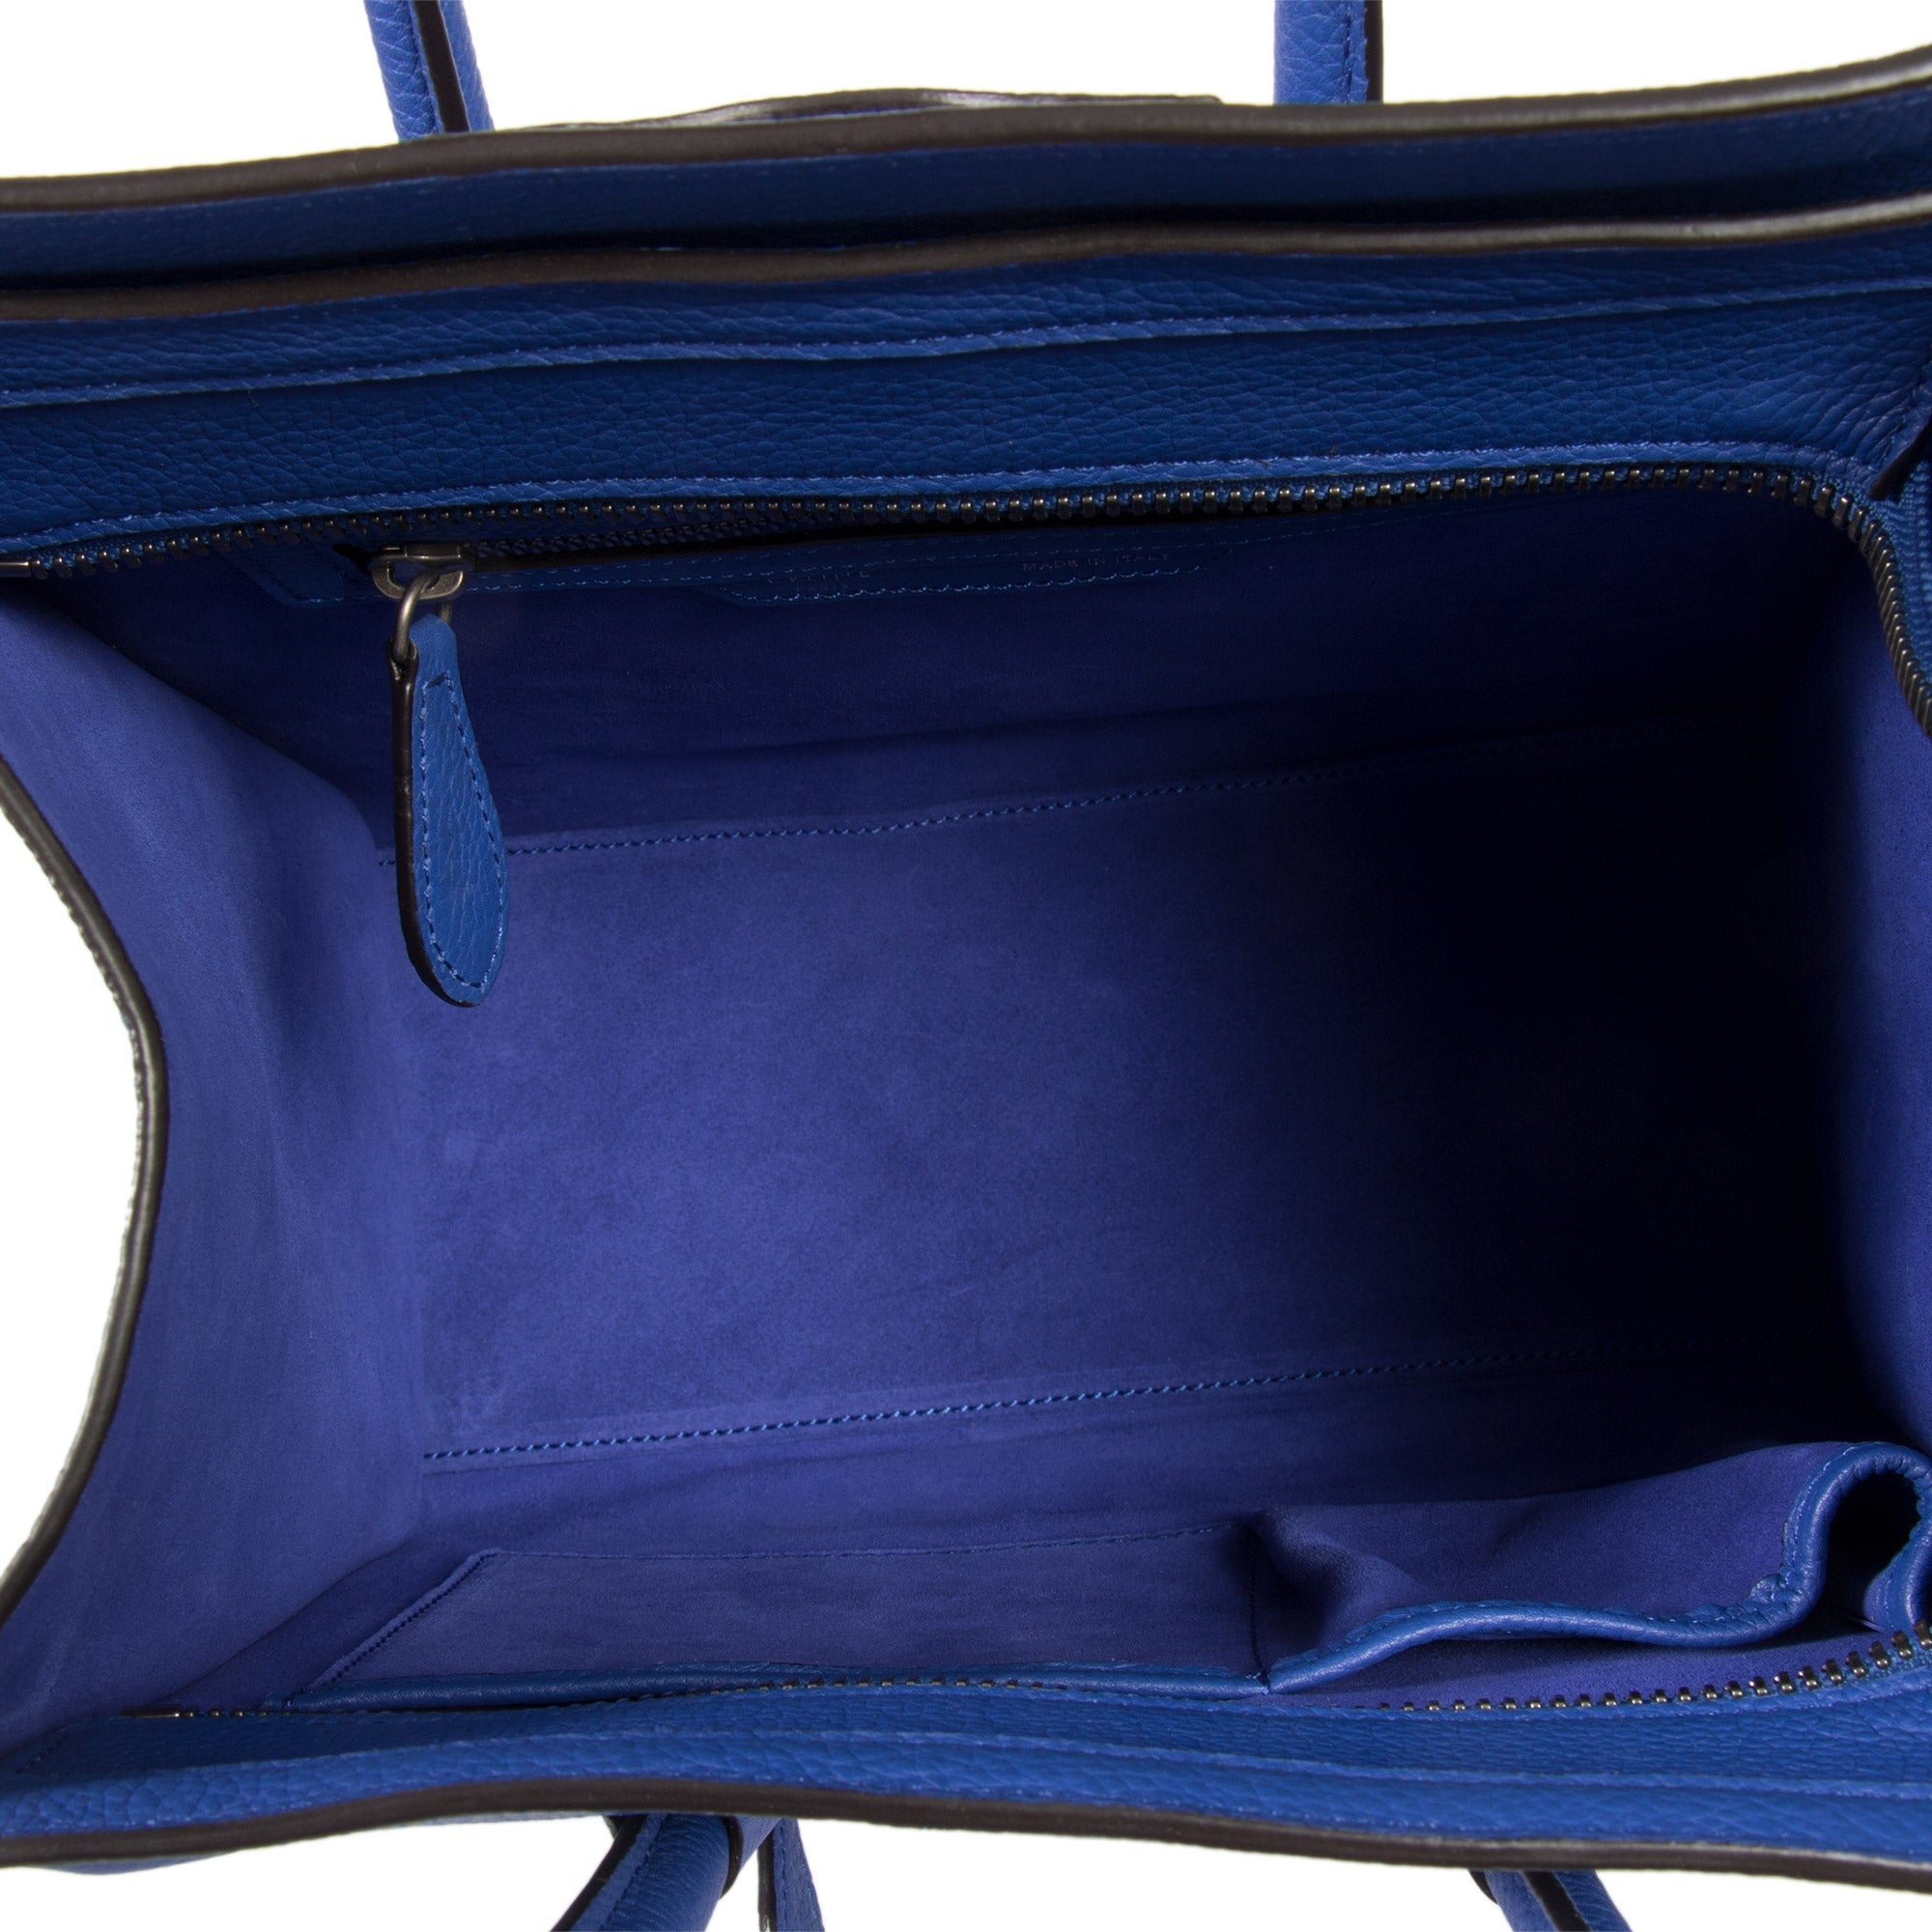 b66b2ef9eb Shop Celine Micro Luggage Tote Bag in Indigo Baby Drummed Calfskin Leather  - Free Shipping Today - Overstock - 23076823